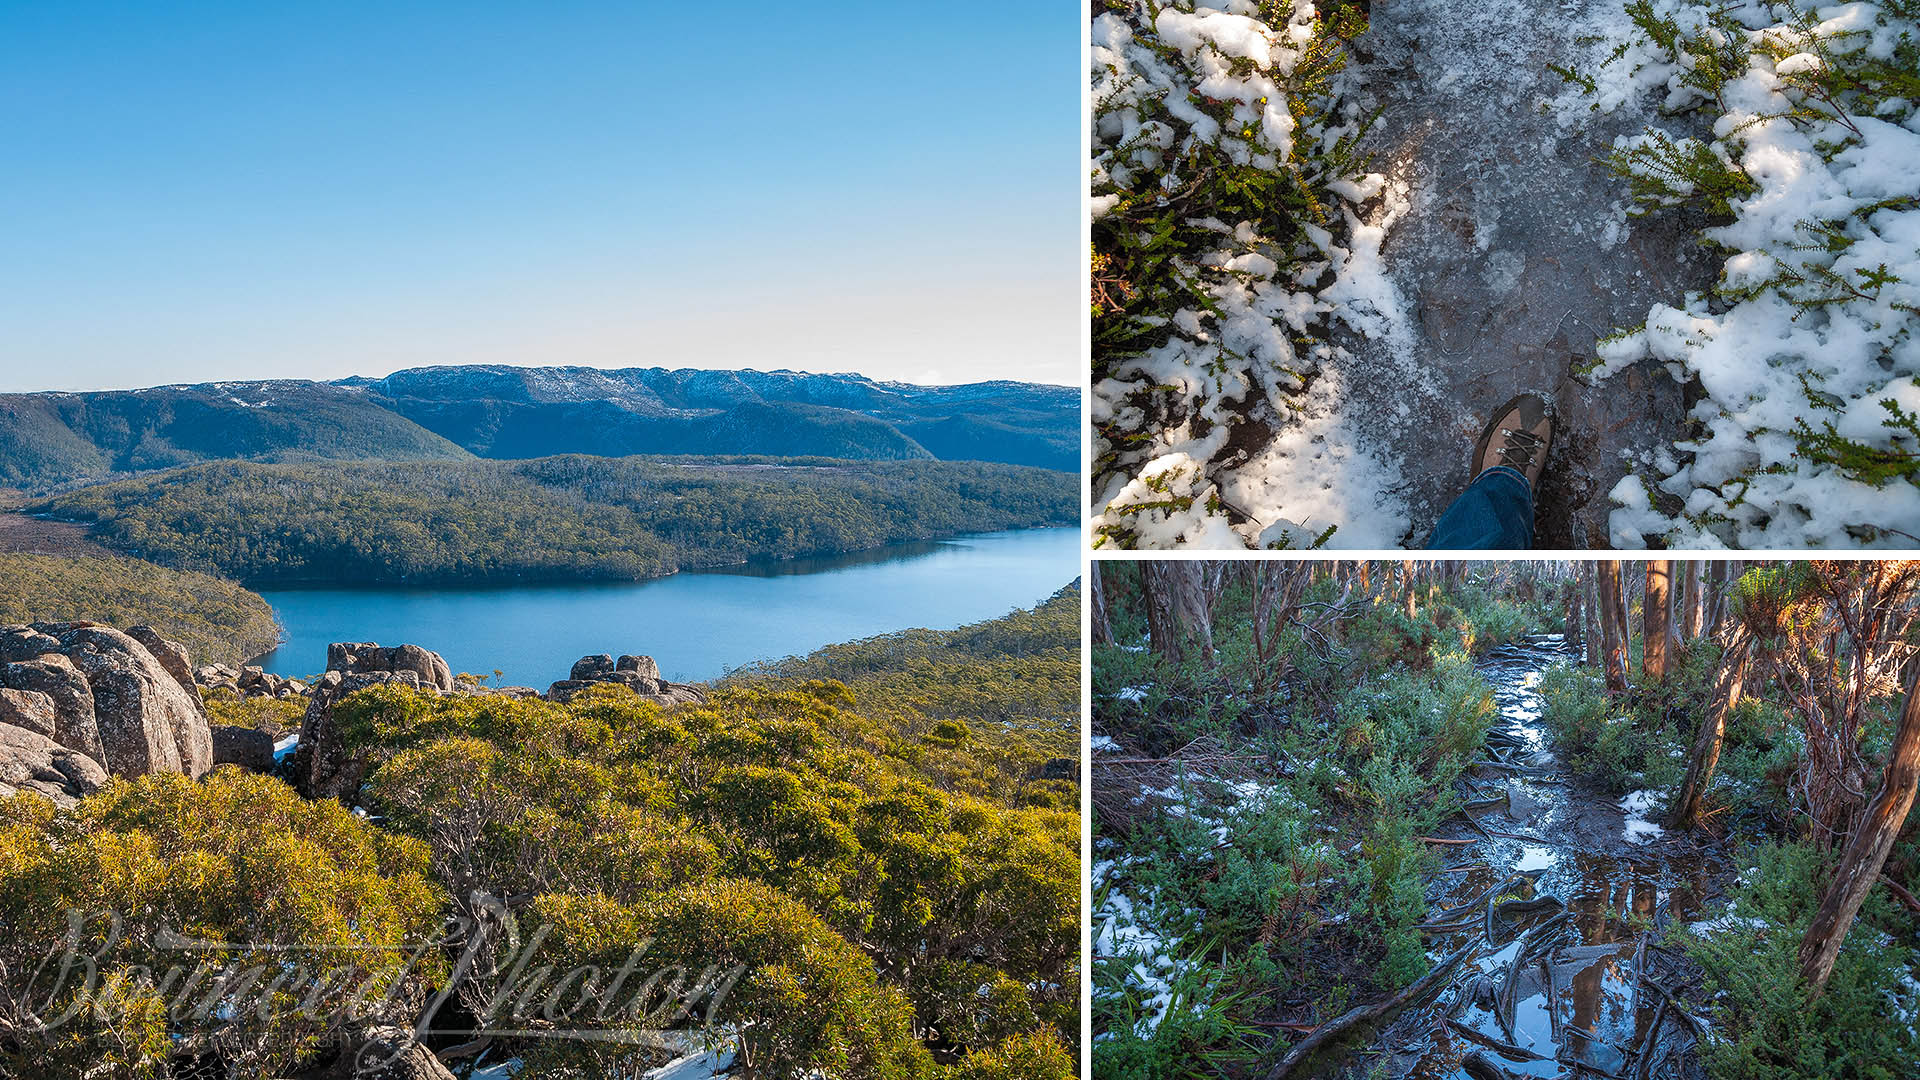 Counterclockwise from the left: view off Seagers Lookout, muddy track up the hill, frozen track upper in the mountains